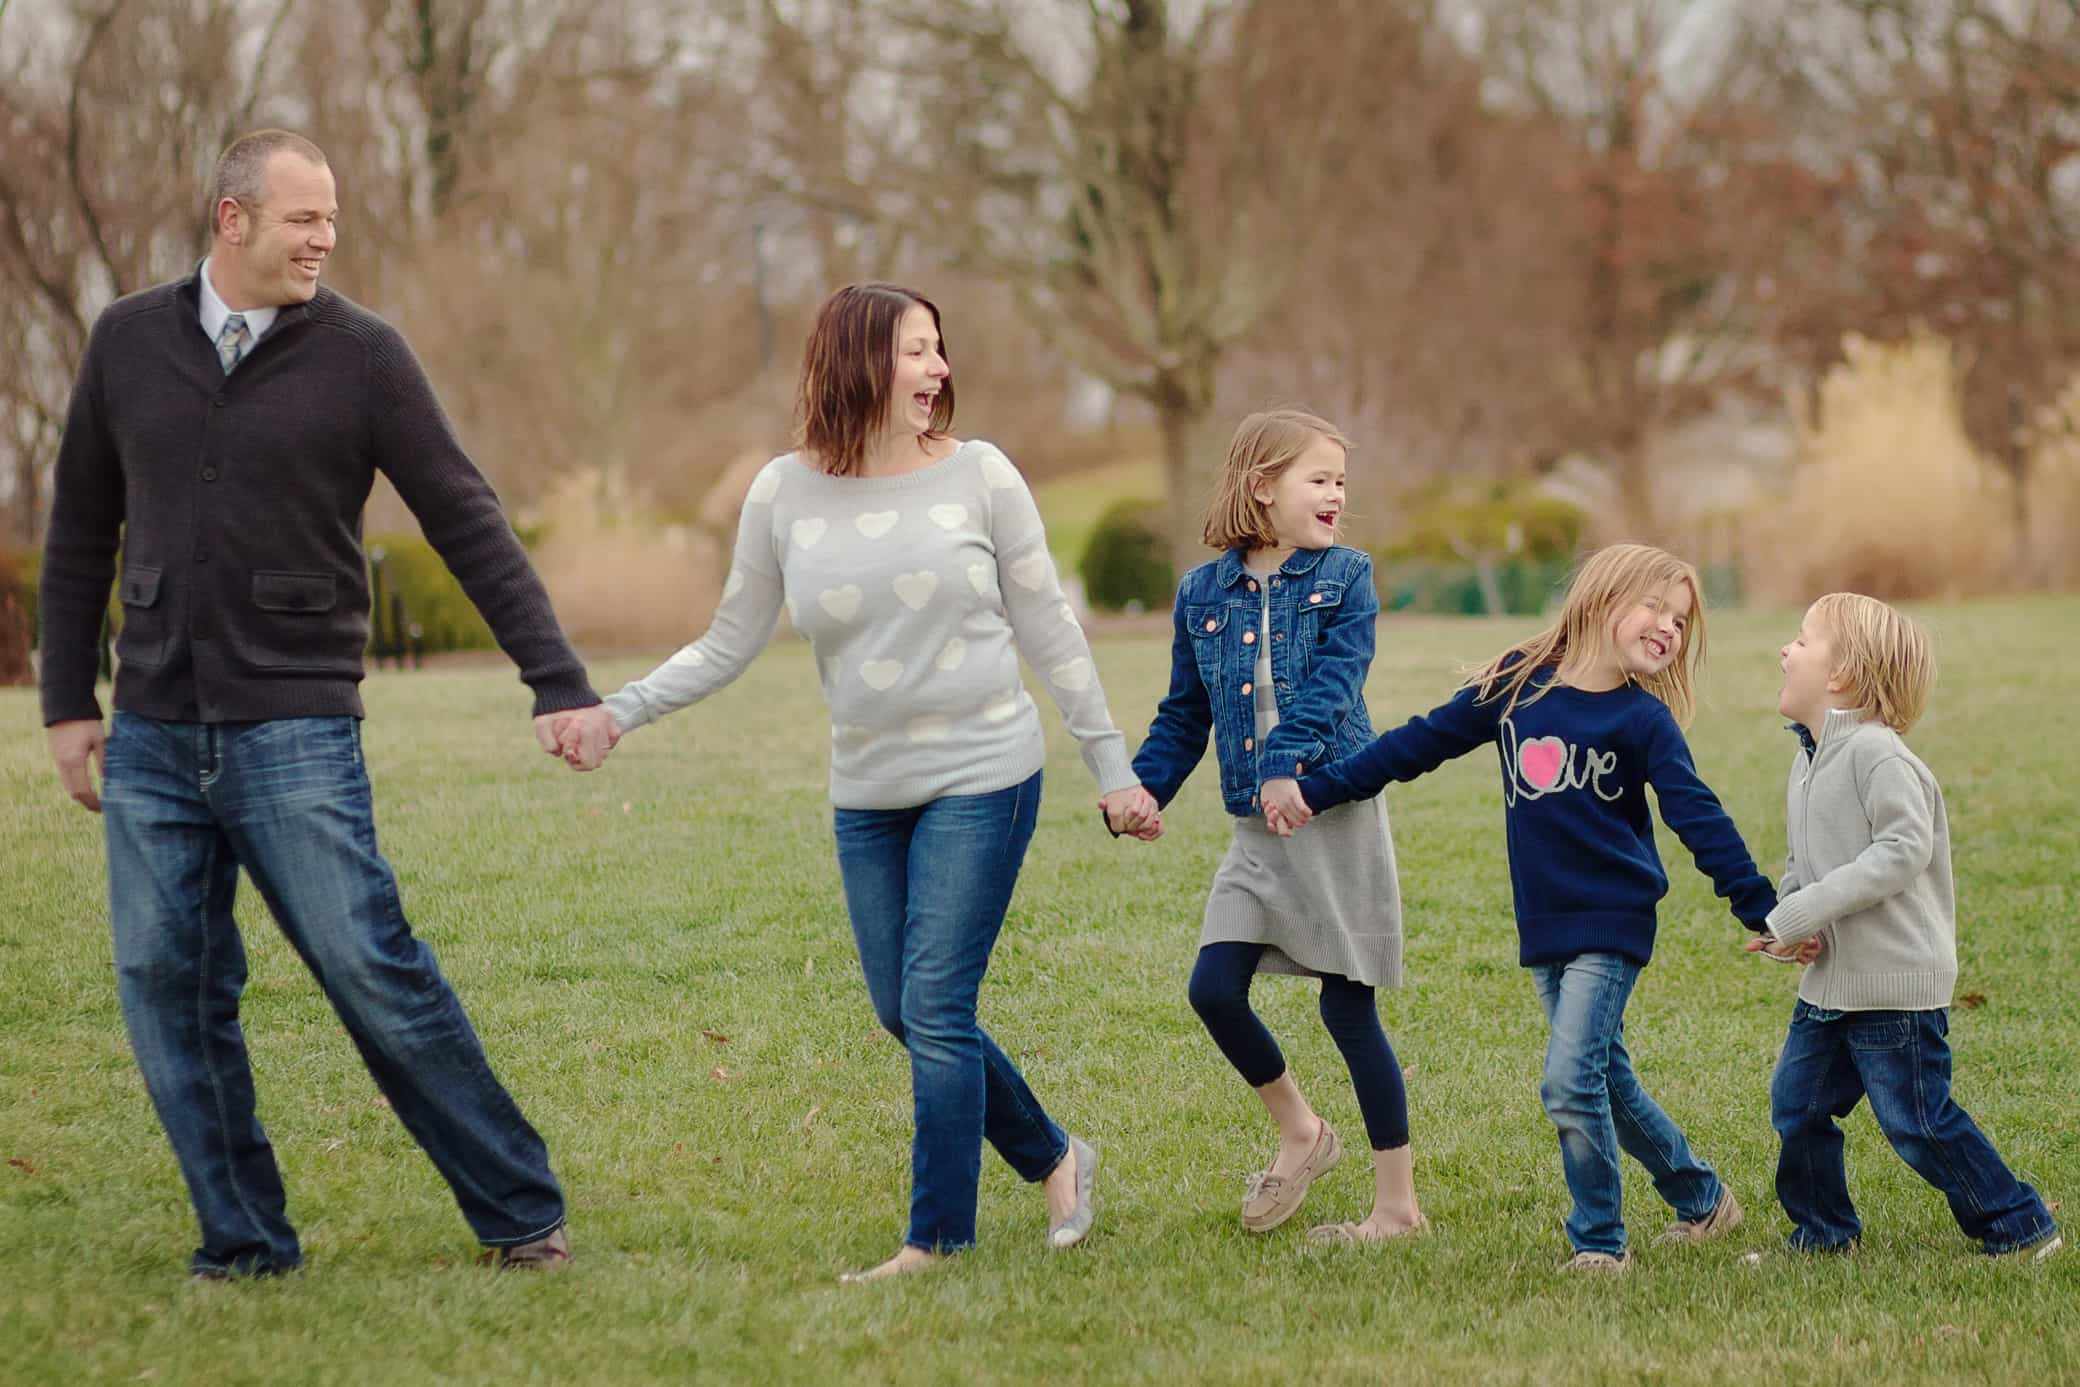 Family walks hand in hand laughing and having fun